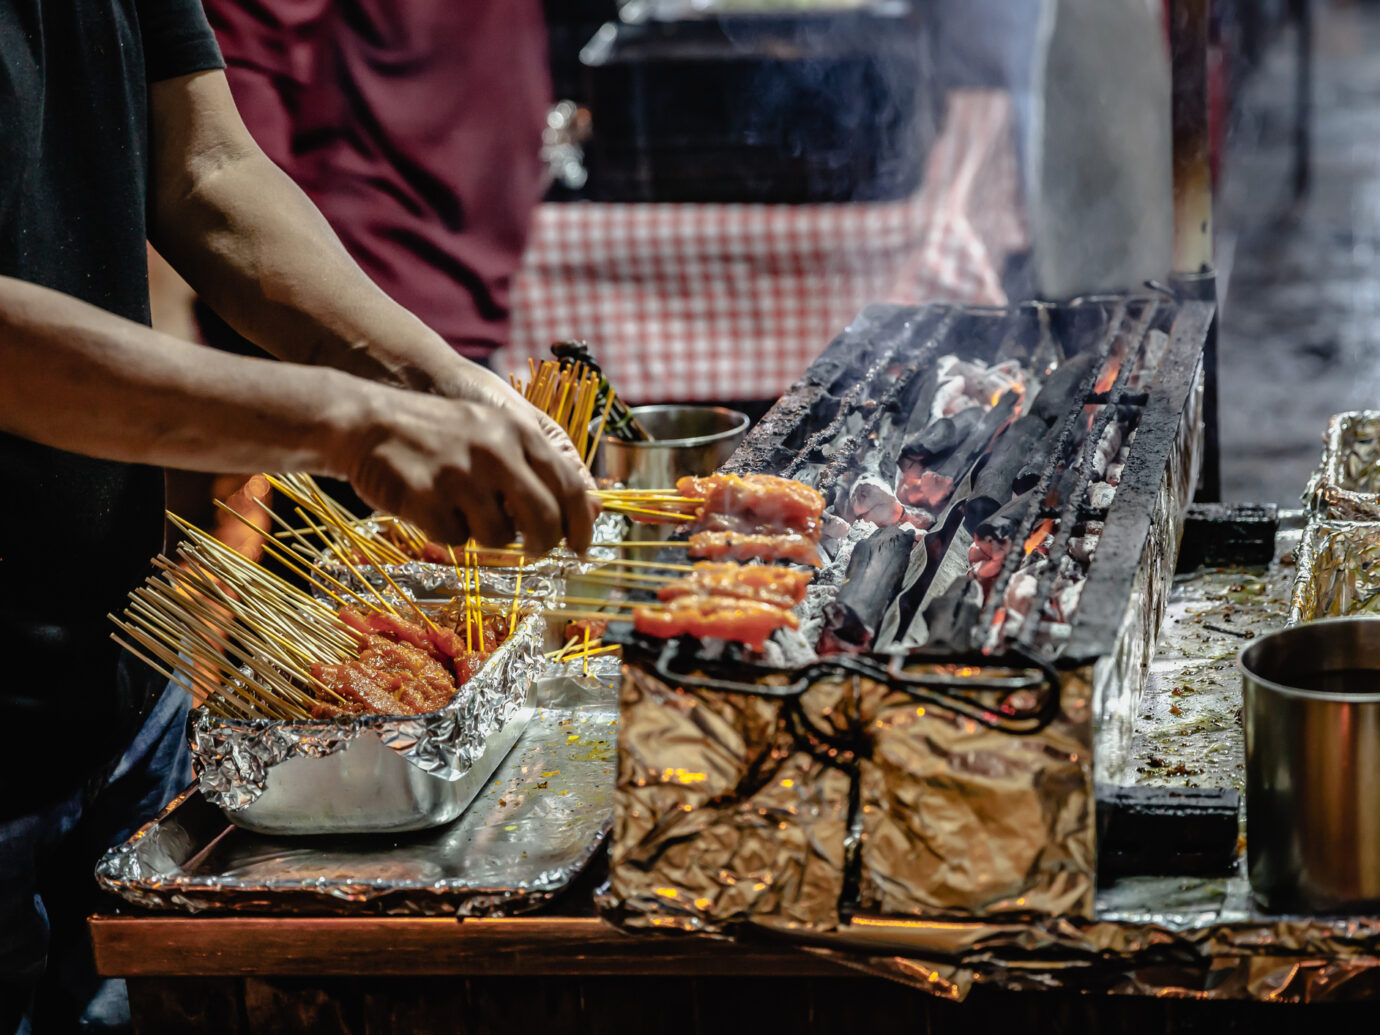 A grill and skewer expert at work on Lau Pa Sat hawker center's famous Satay Street. Singapore.